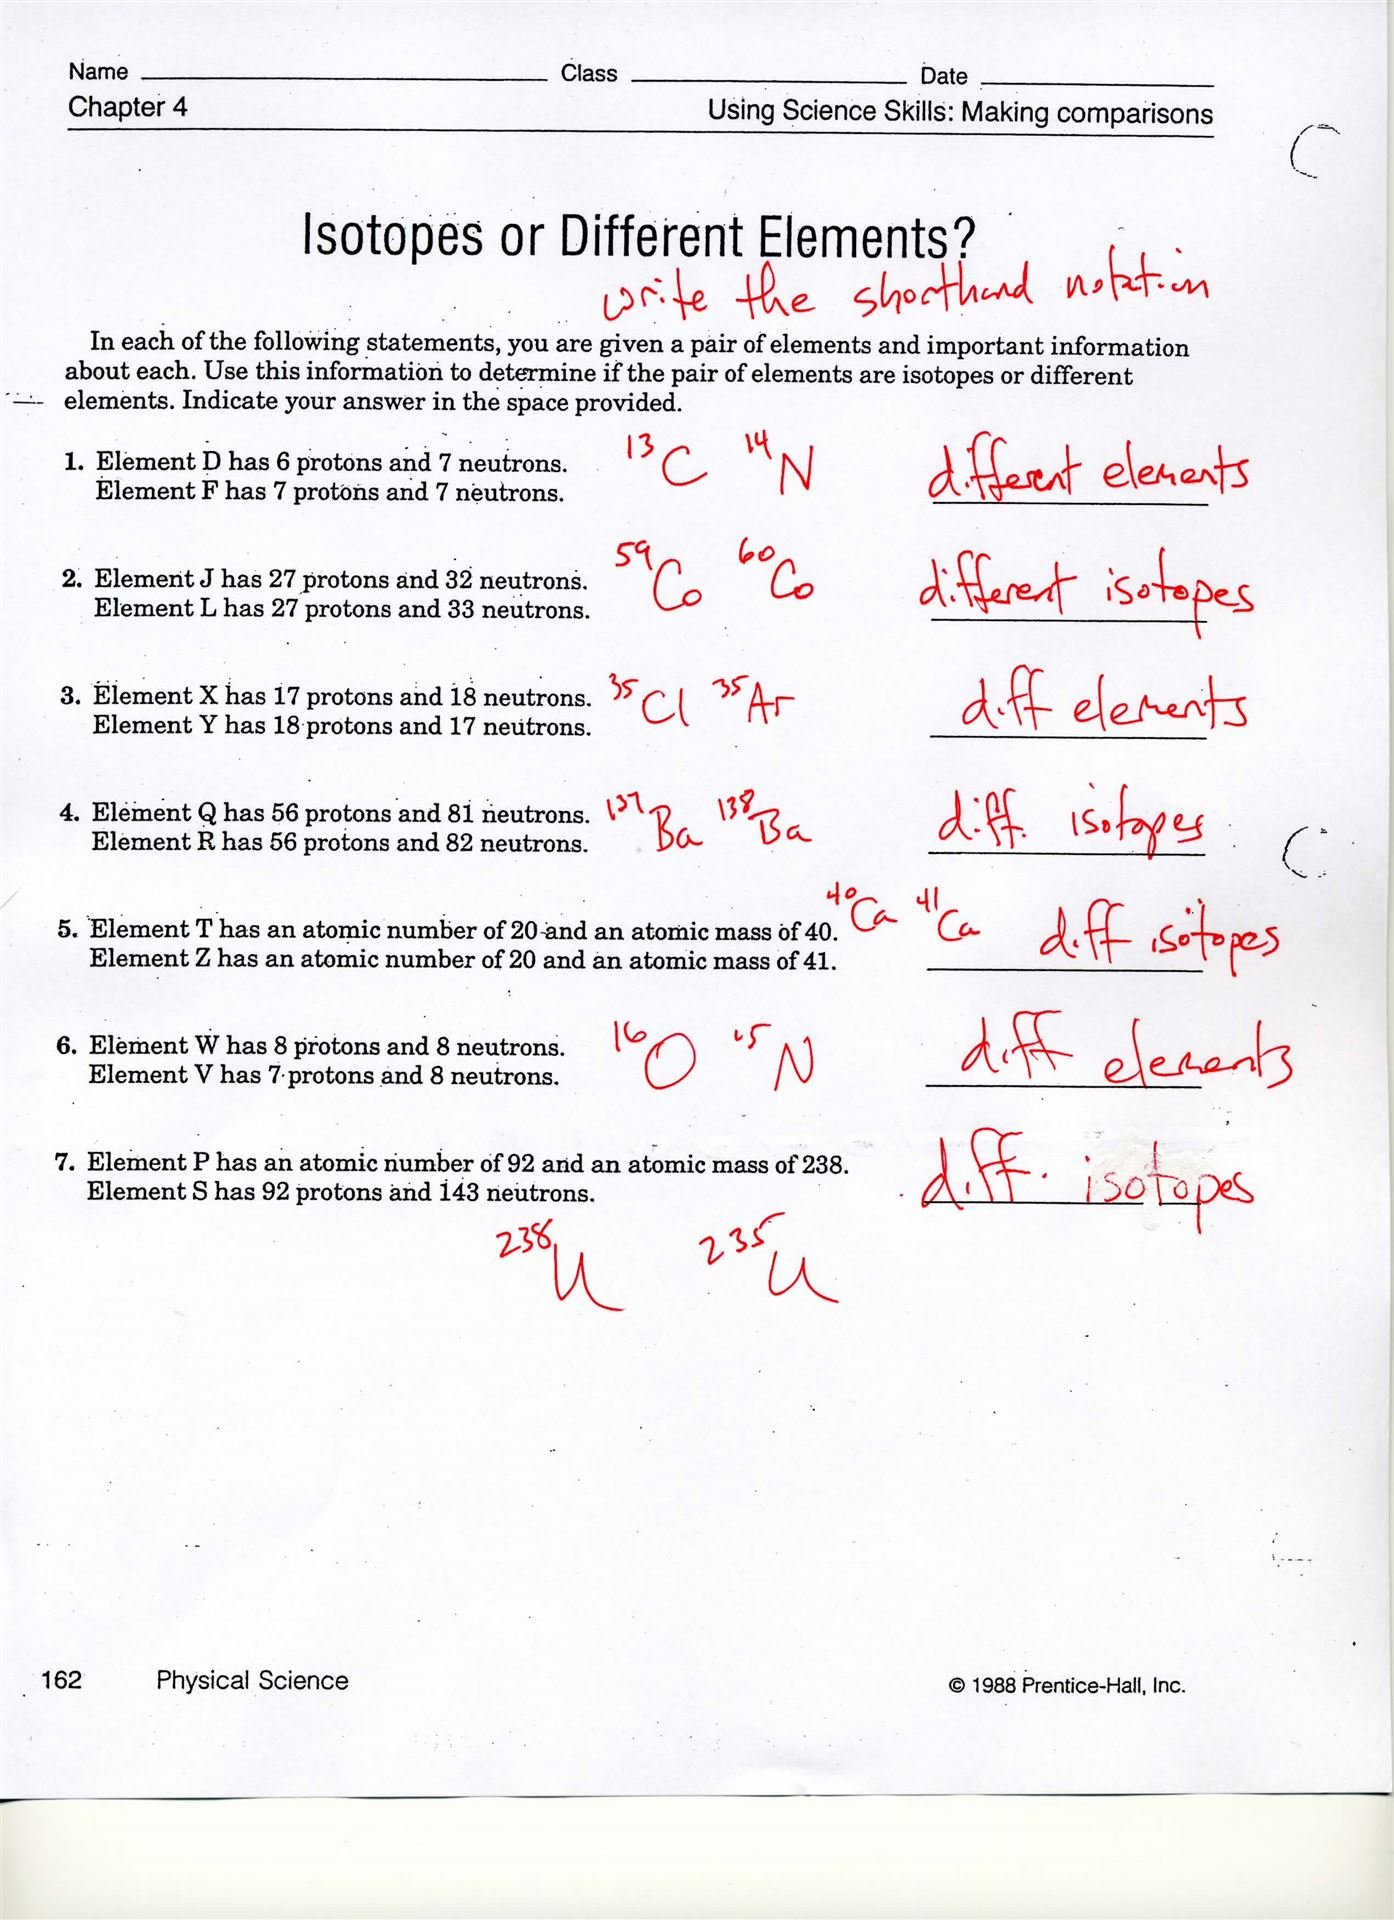 Isotopes Or Different Elements Chapter 4 Worksheet Answers